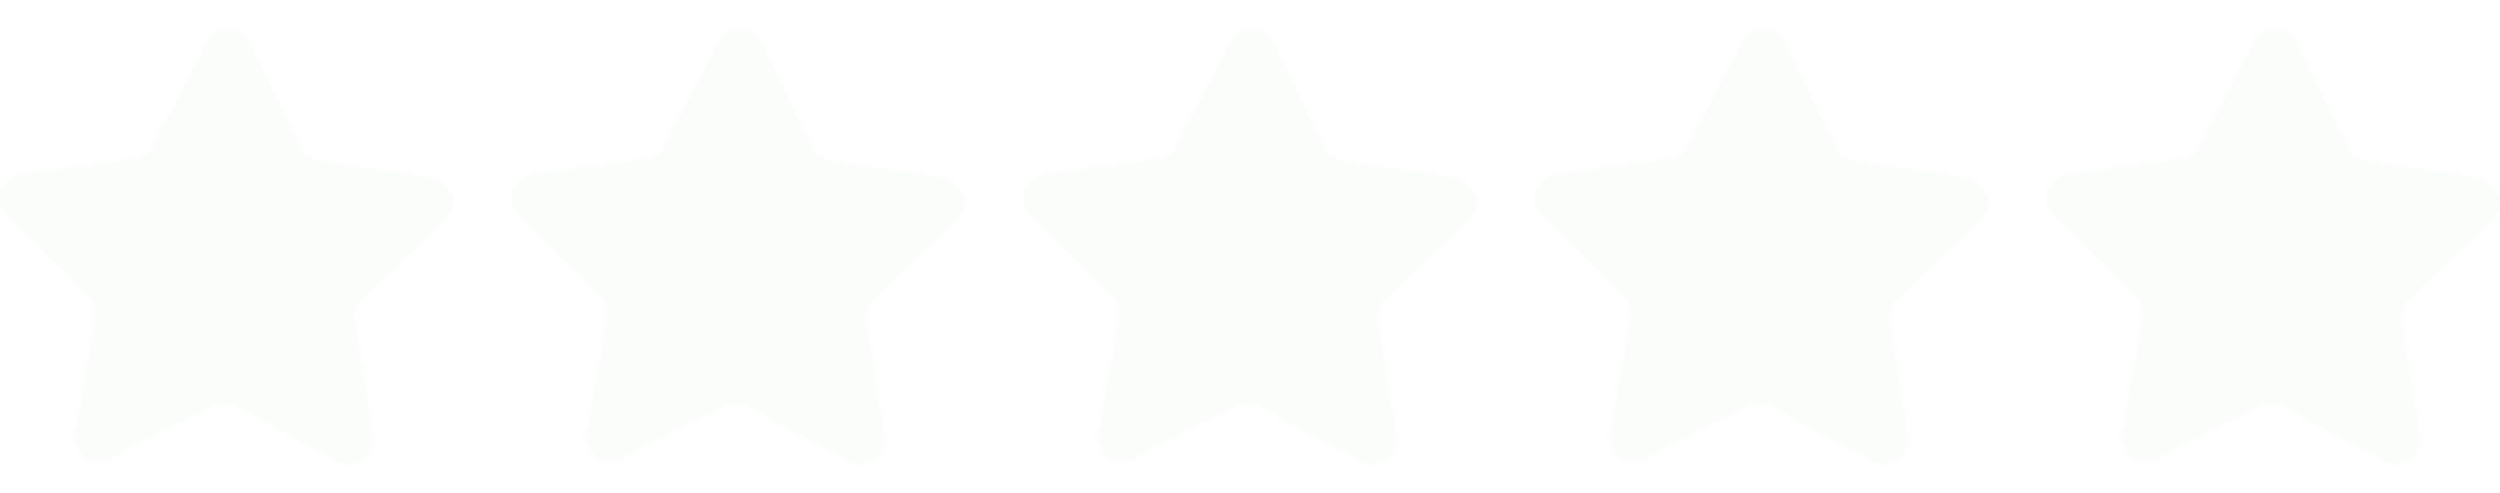 Stars_whiteandtransparent.png